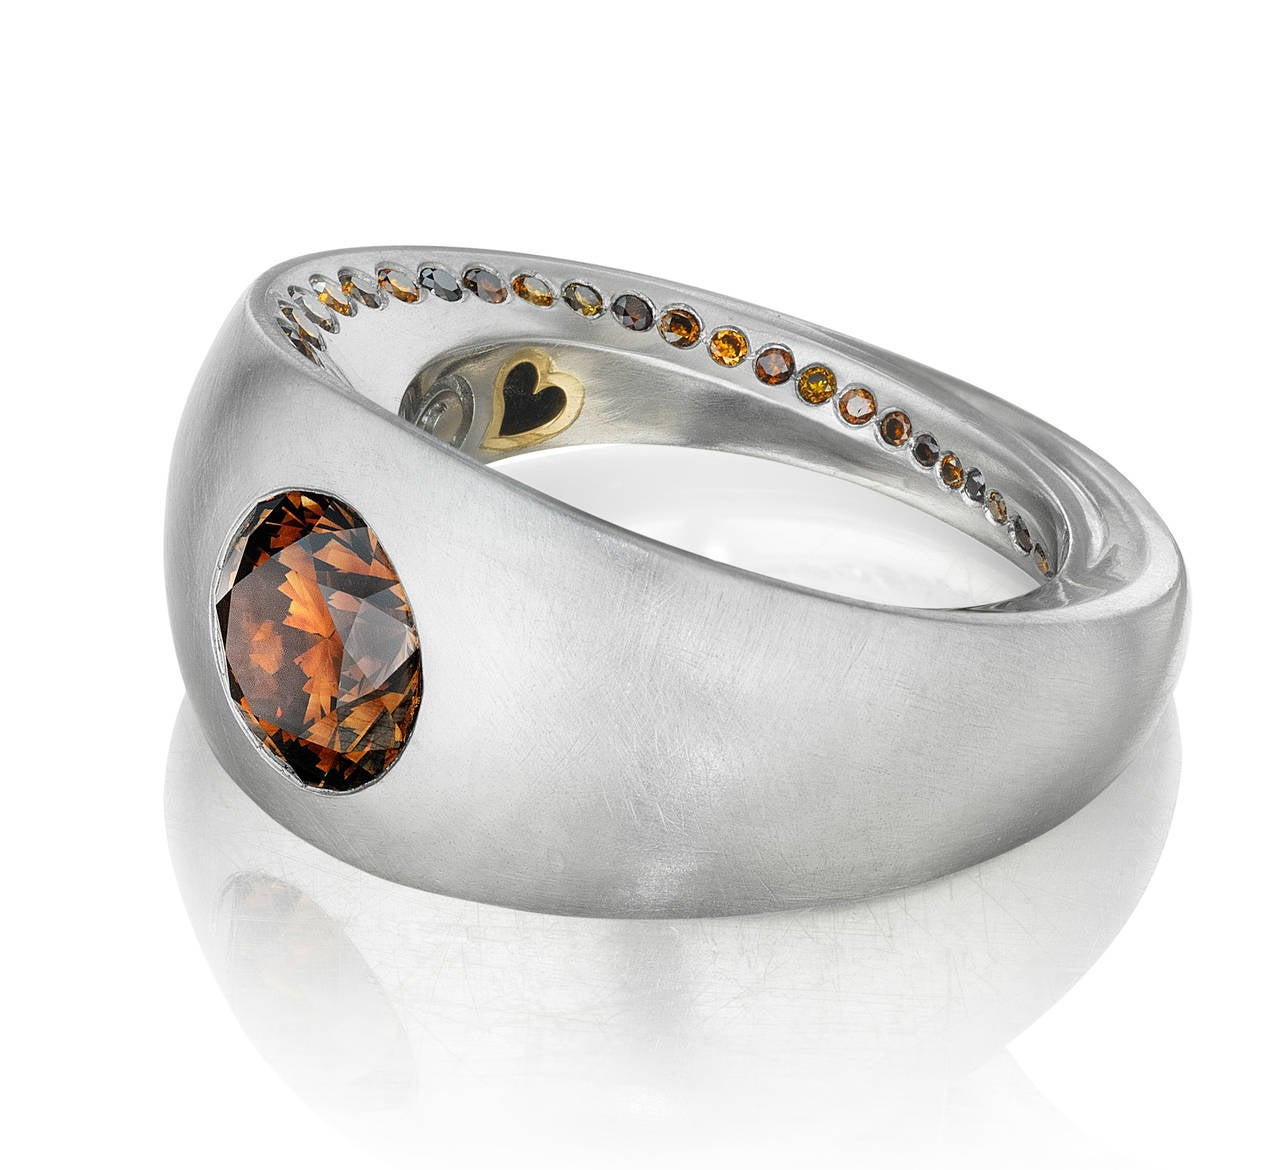 This magnificent ring won Platinum Honors in the prestigious American Gem Trade Association 2015 competition. The central diamond is a 3.17 ct GIA certified natural fancy orangey brown diamond. This stunning diamond is set in platinum with an